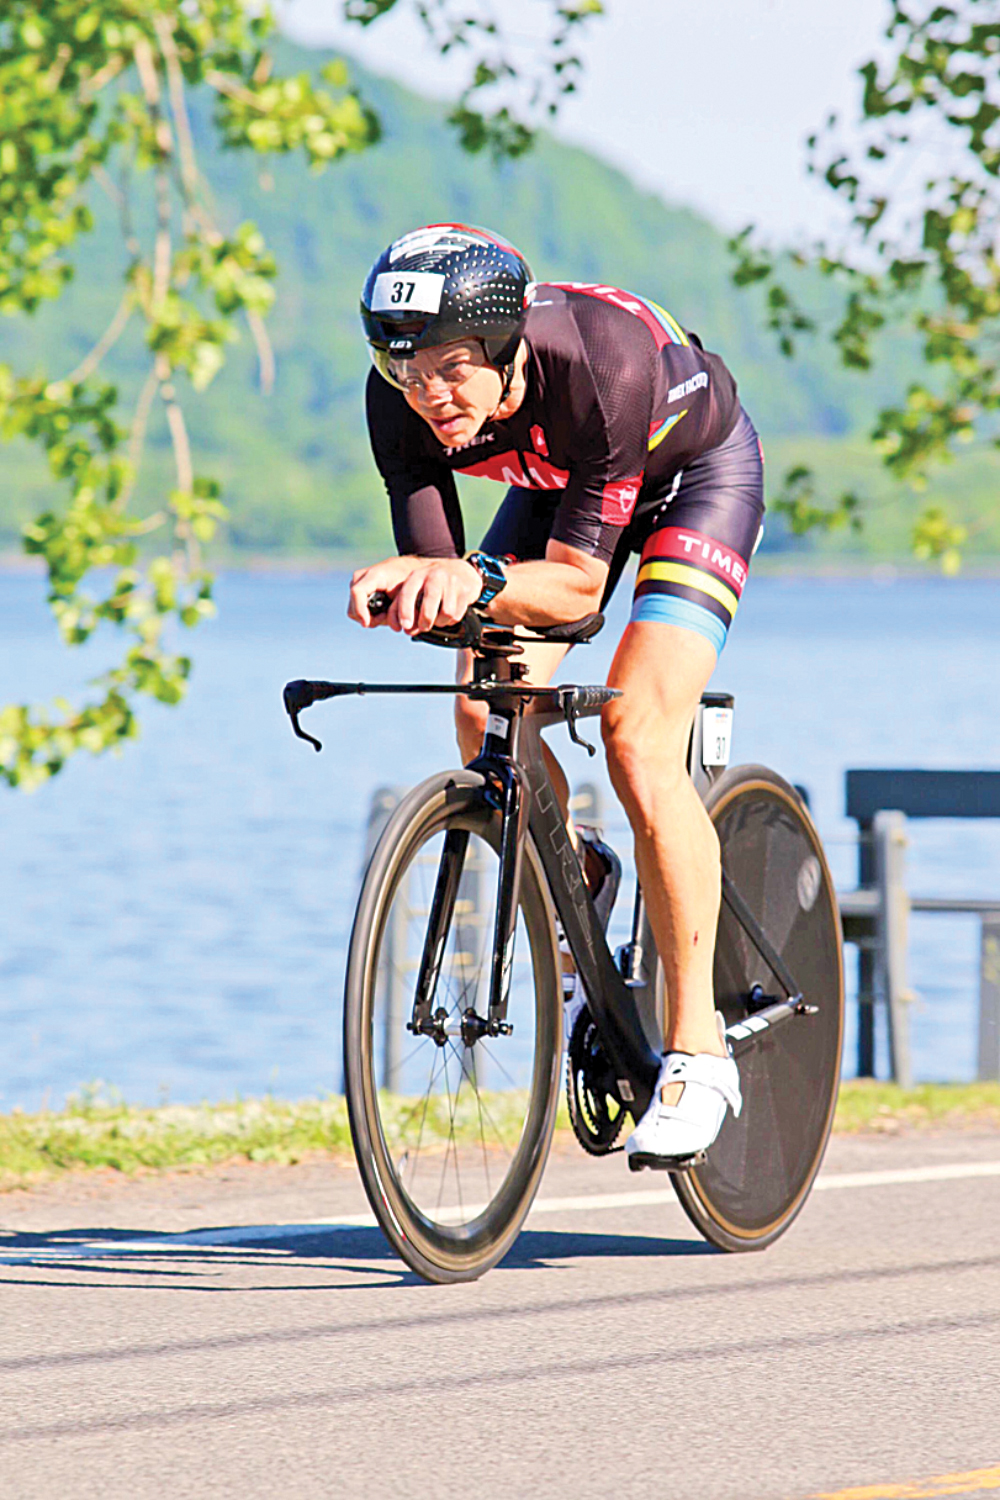 2016 Ironman 70.3 Syracuse.